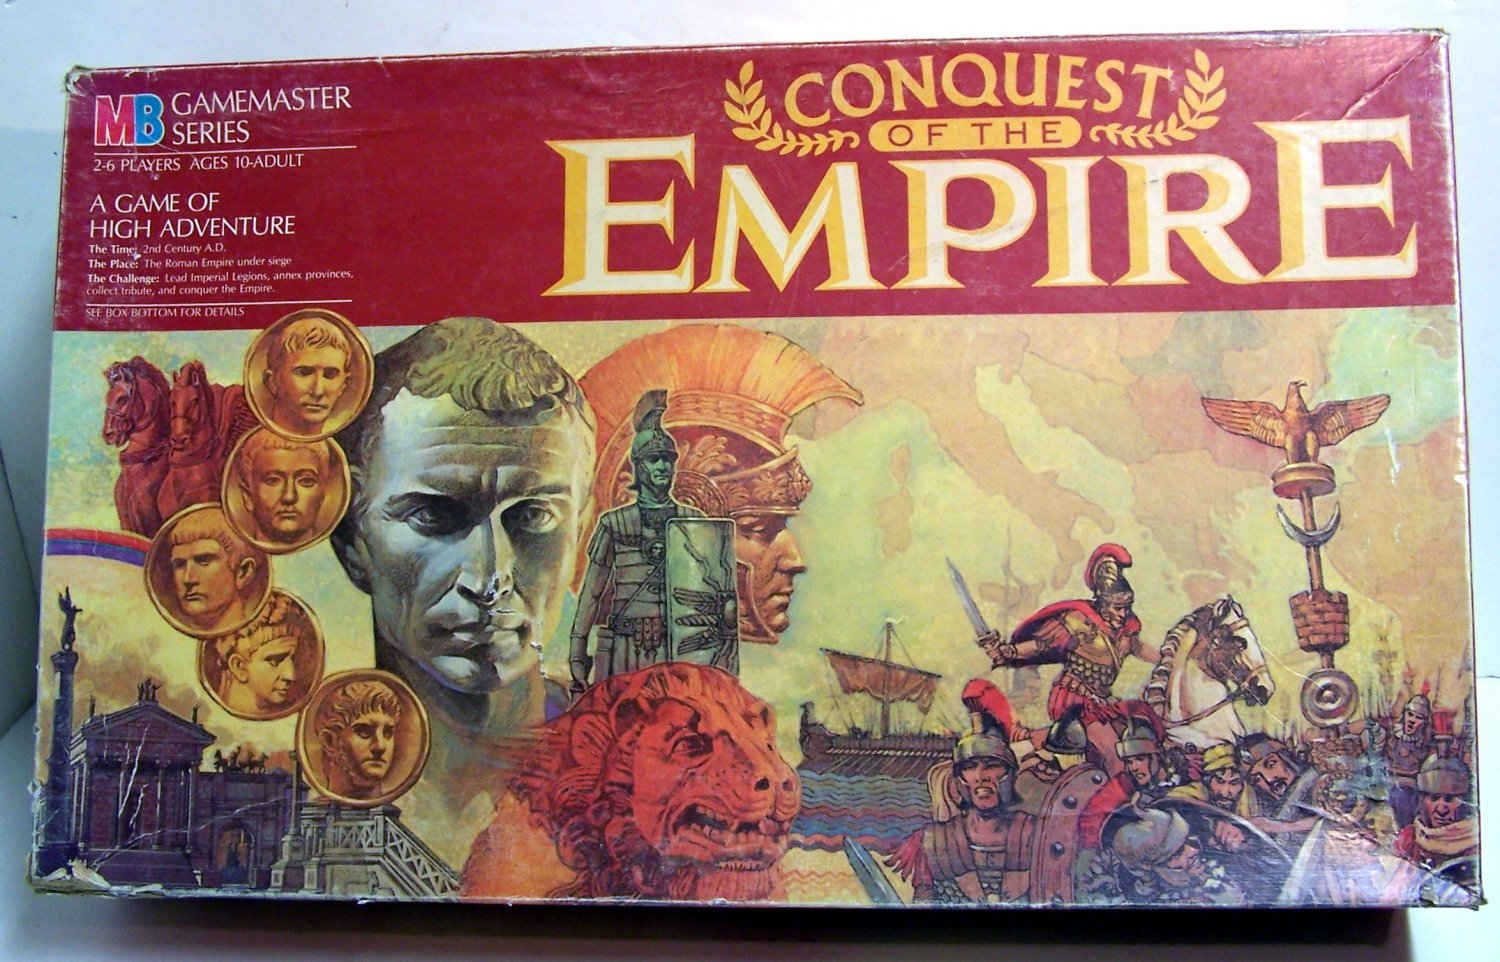 Conquest of the Empire MB Gamemaster Series 1984